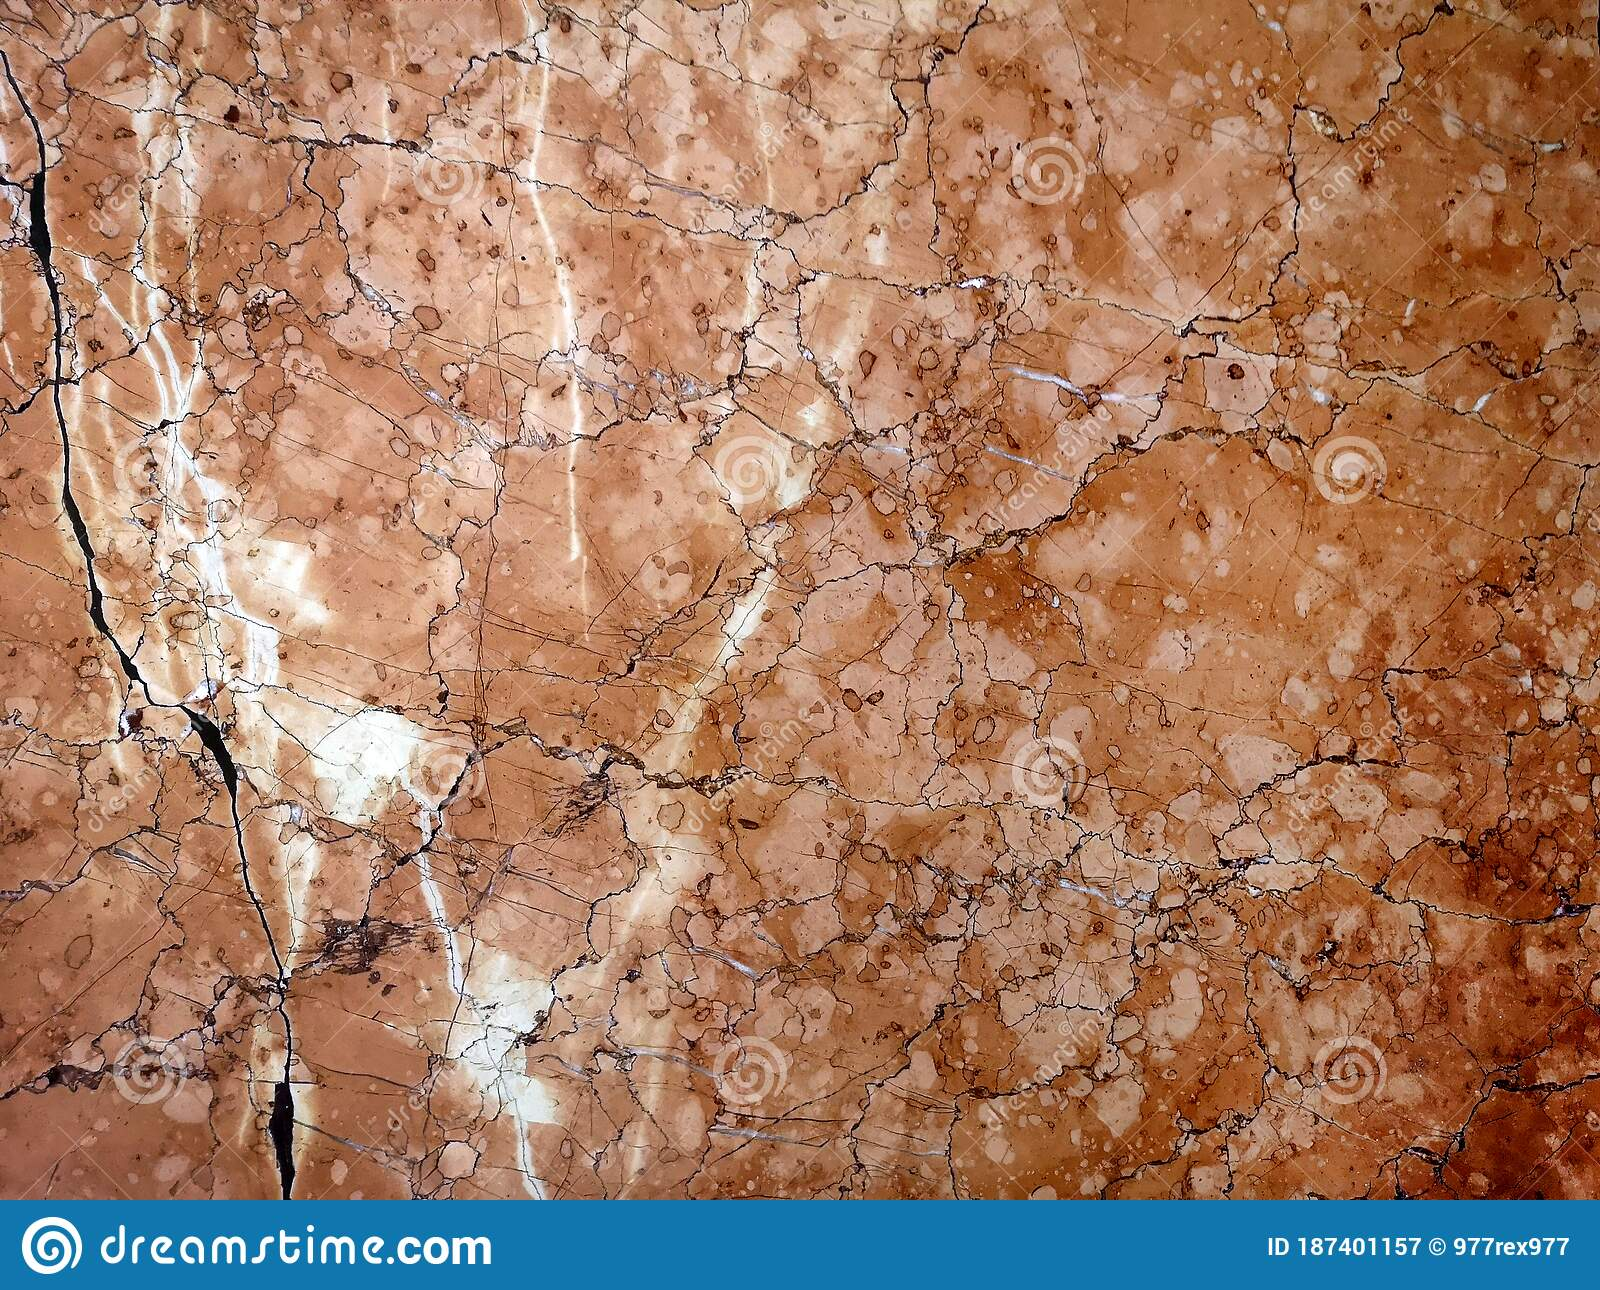 Red Brown Marble Natural Texture Background Close Up Stock Image Image Of Color Design 187401157